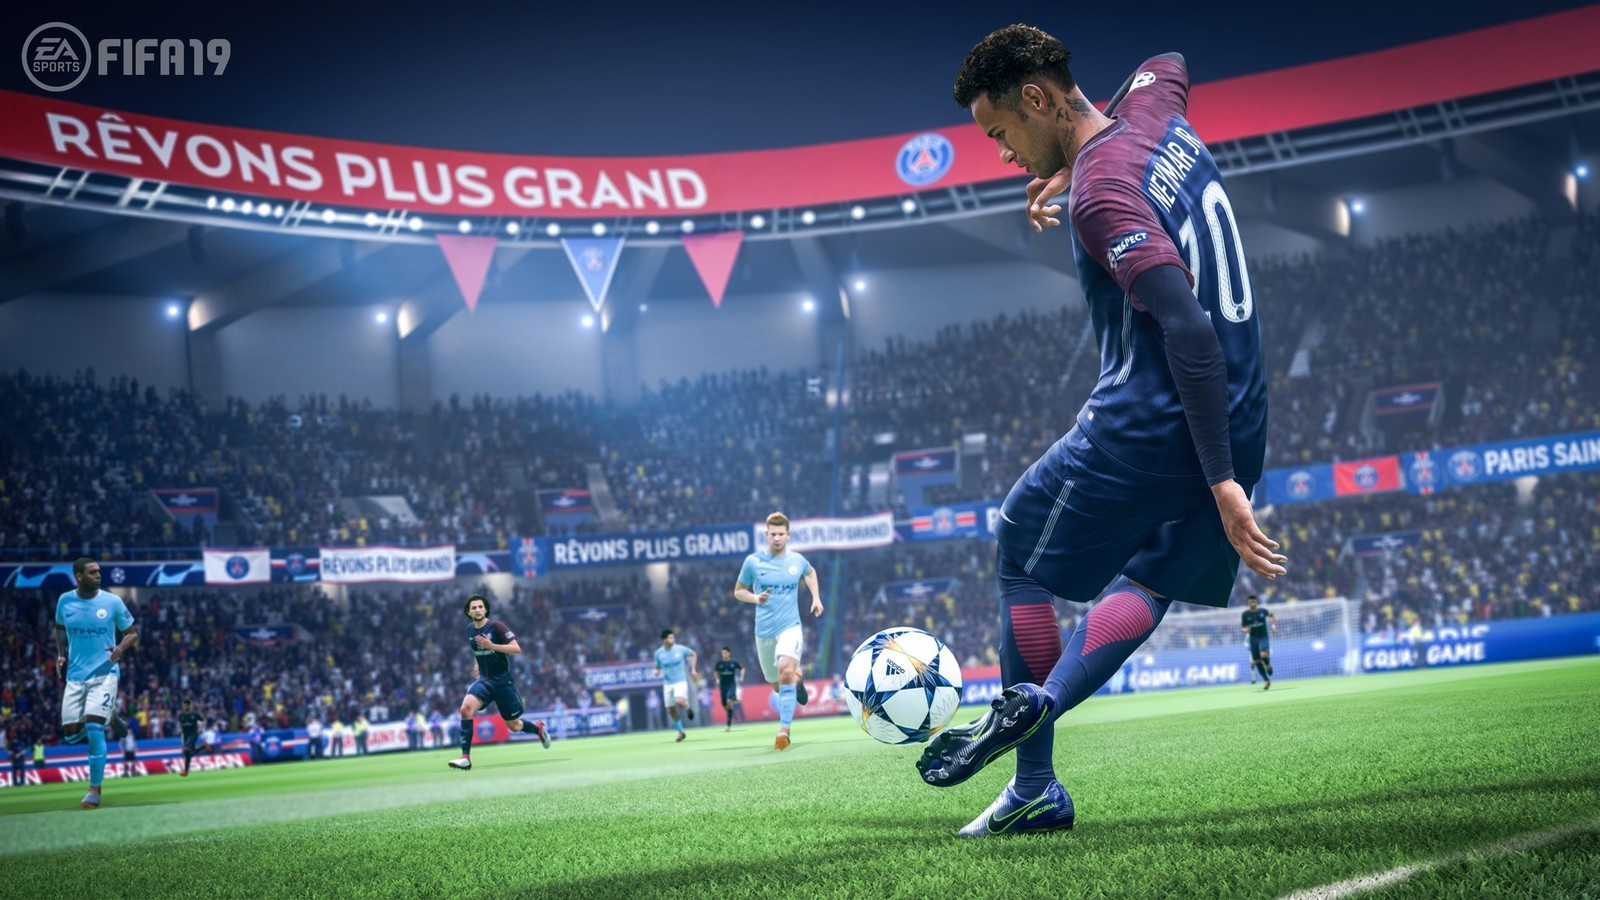 Brussels prosecutors launch investigation into EA over refusal to remove loot boxes